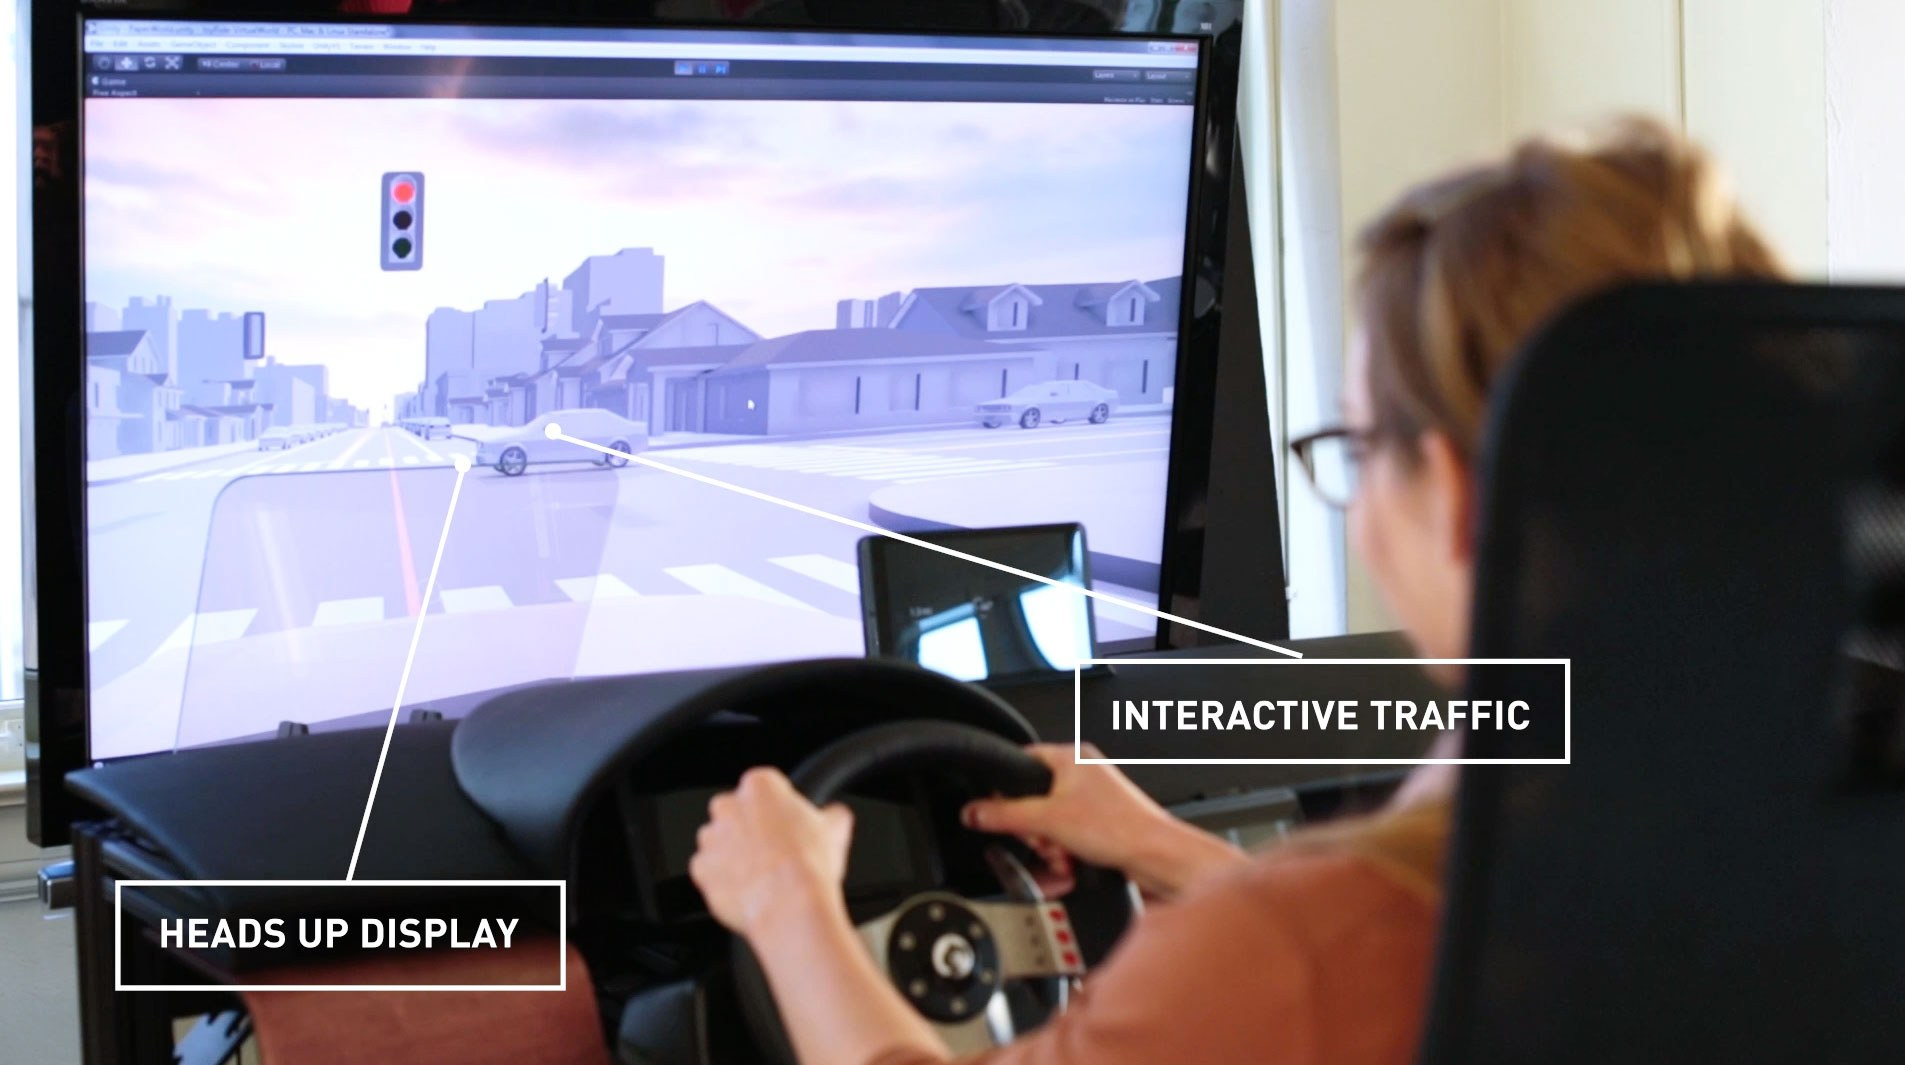 Blonde woman looking at heads up display on an autonomous car simulator